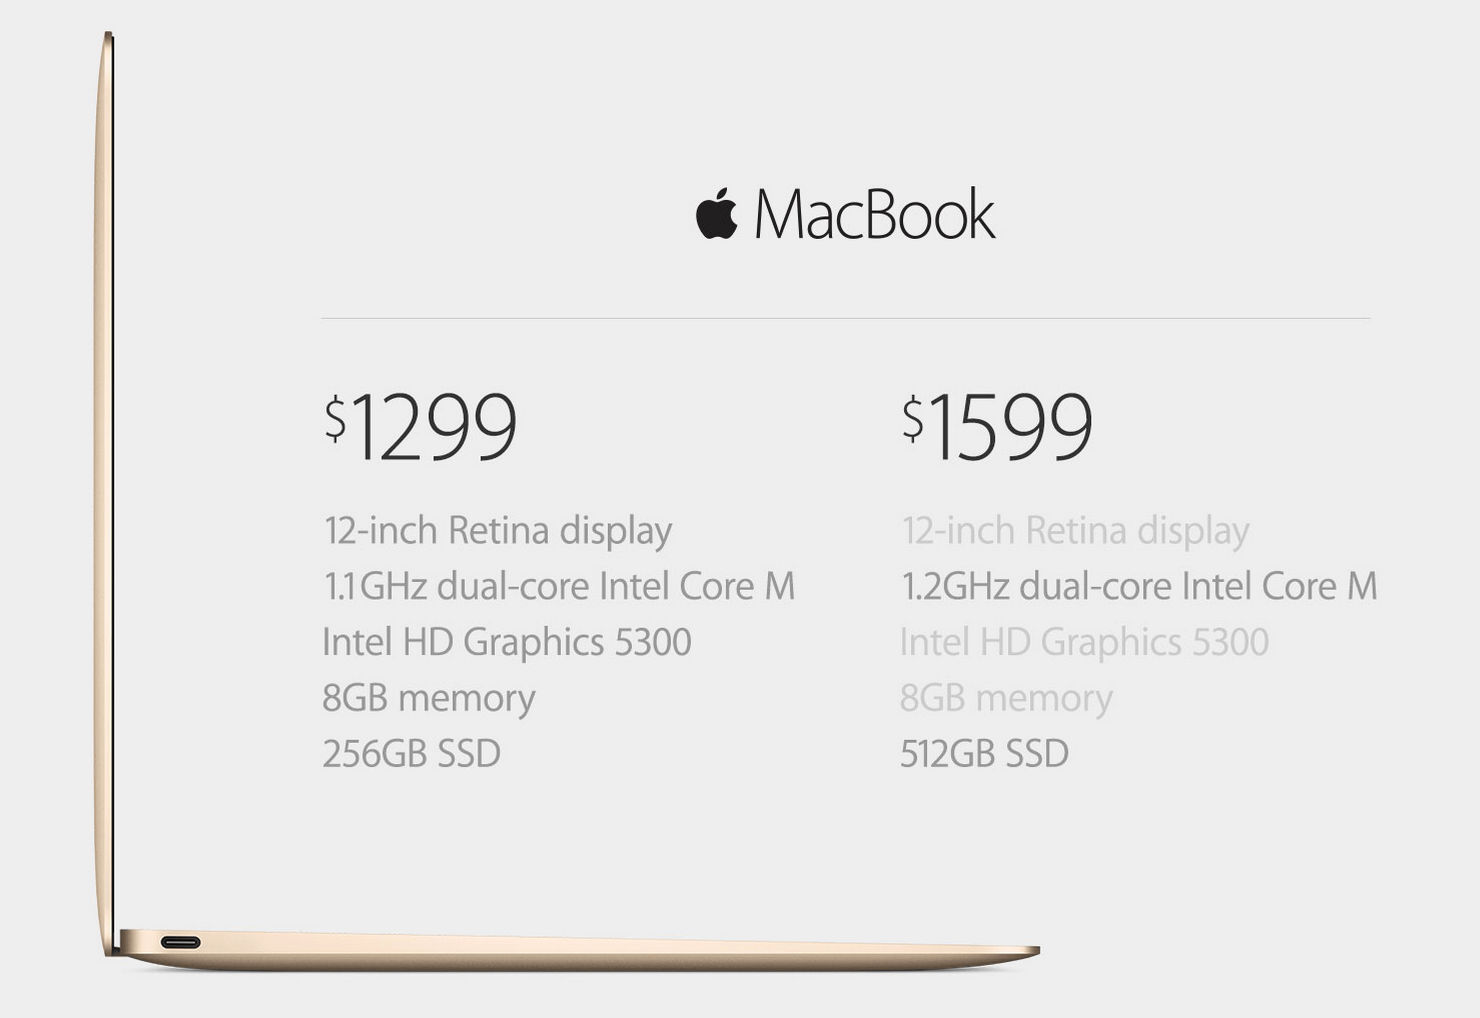 Apple unveils new MacBook with Retina display, available